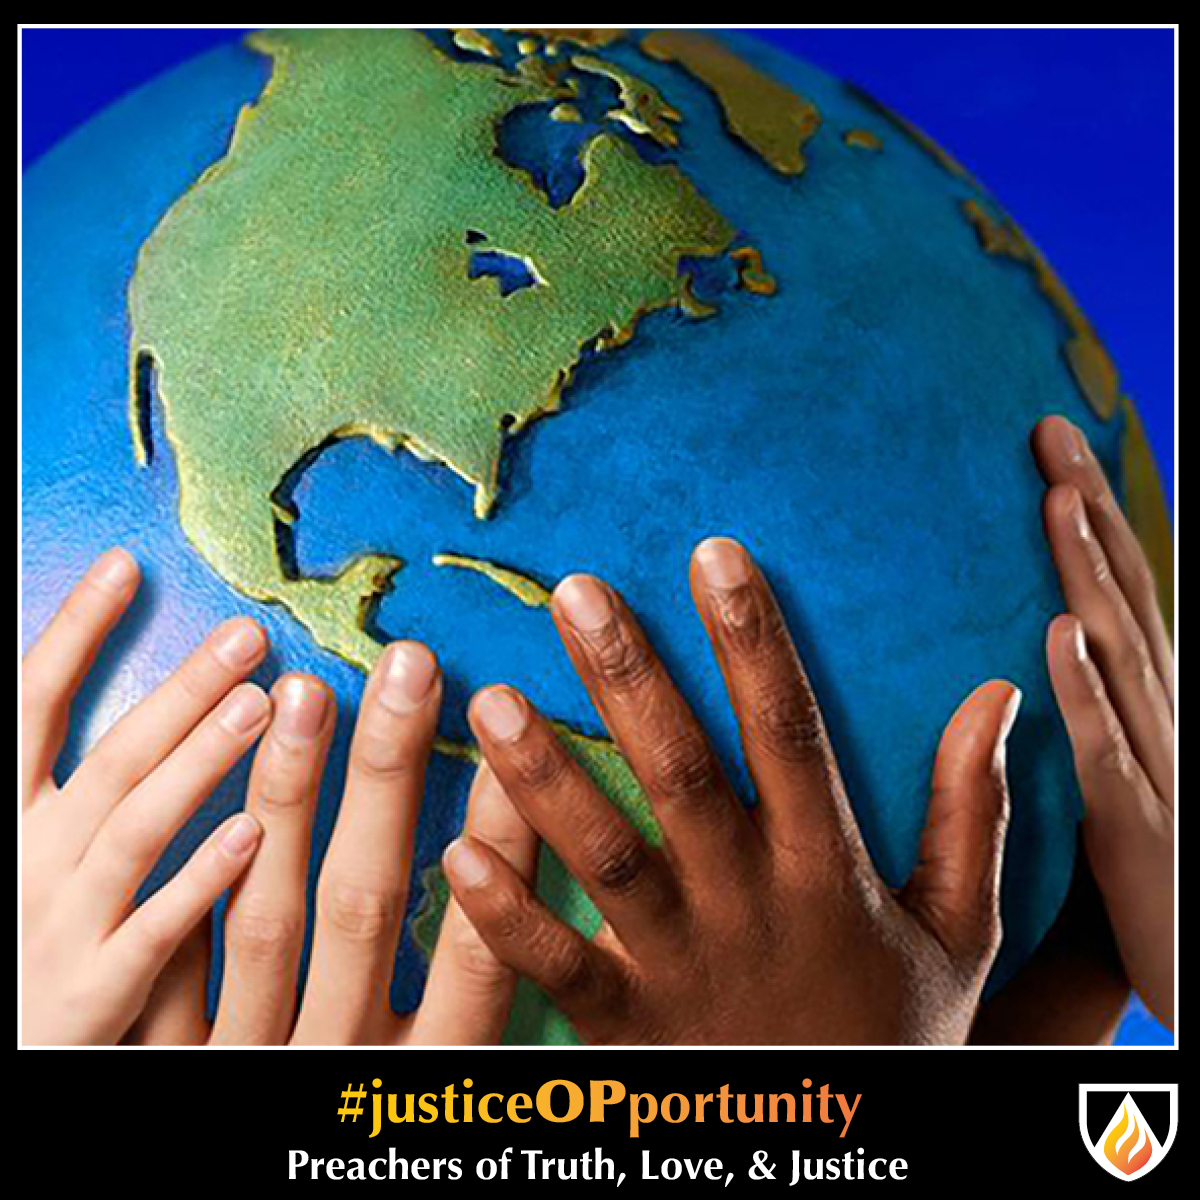 #justiceOPportunity Thursday, June 25, 2020